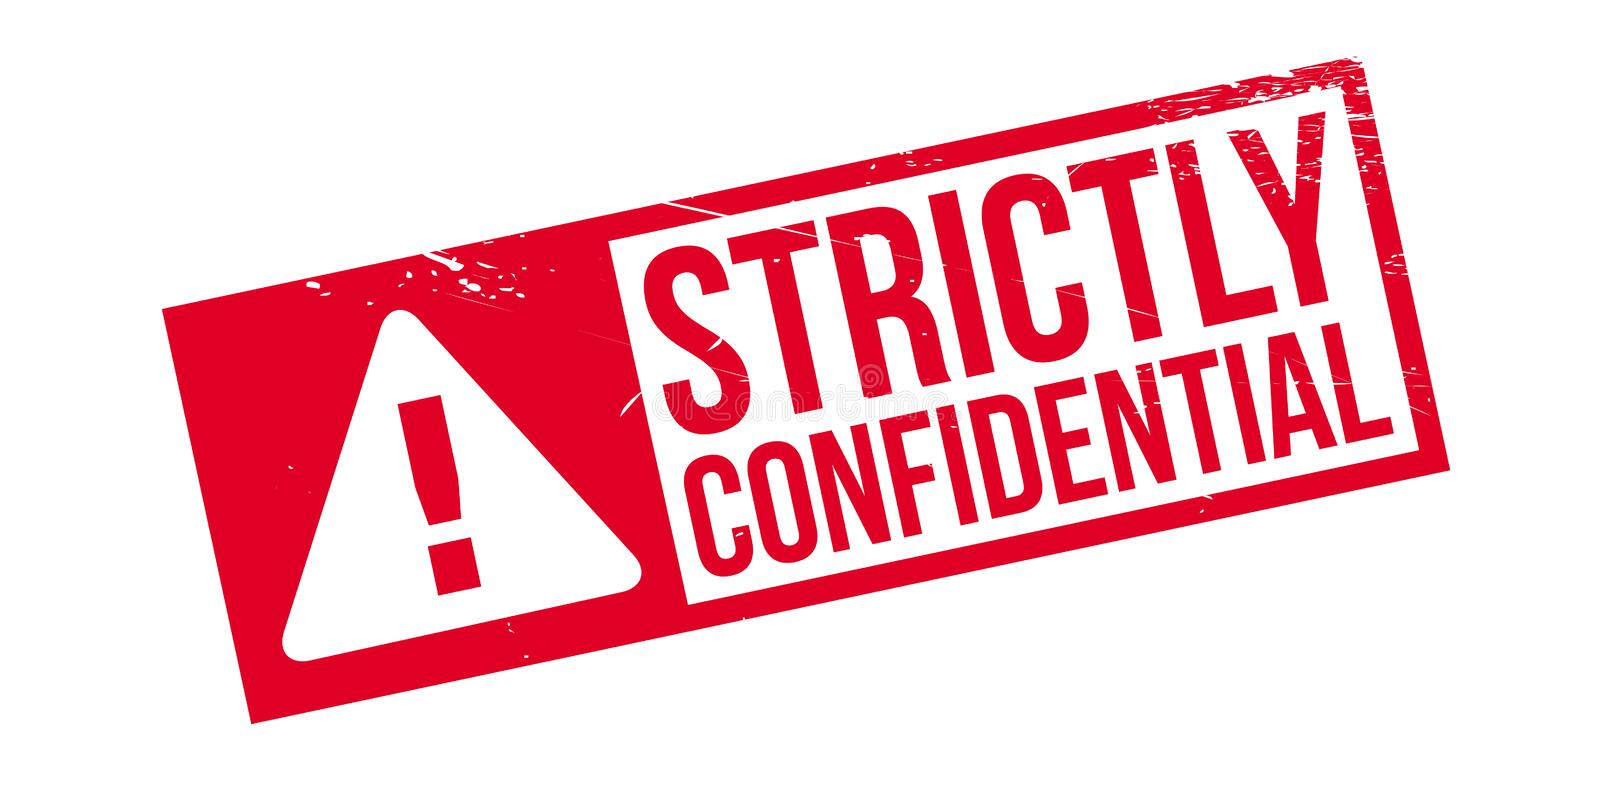 Strictly Confidential Rubber Stamp Stock Image - Image of ...